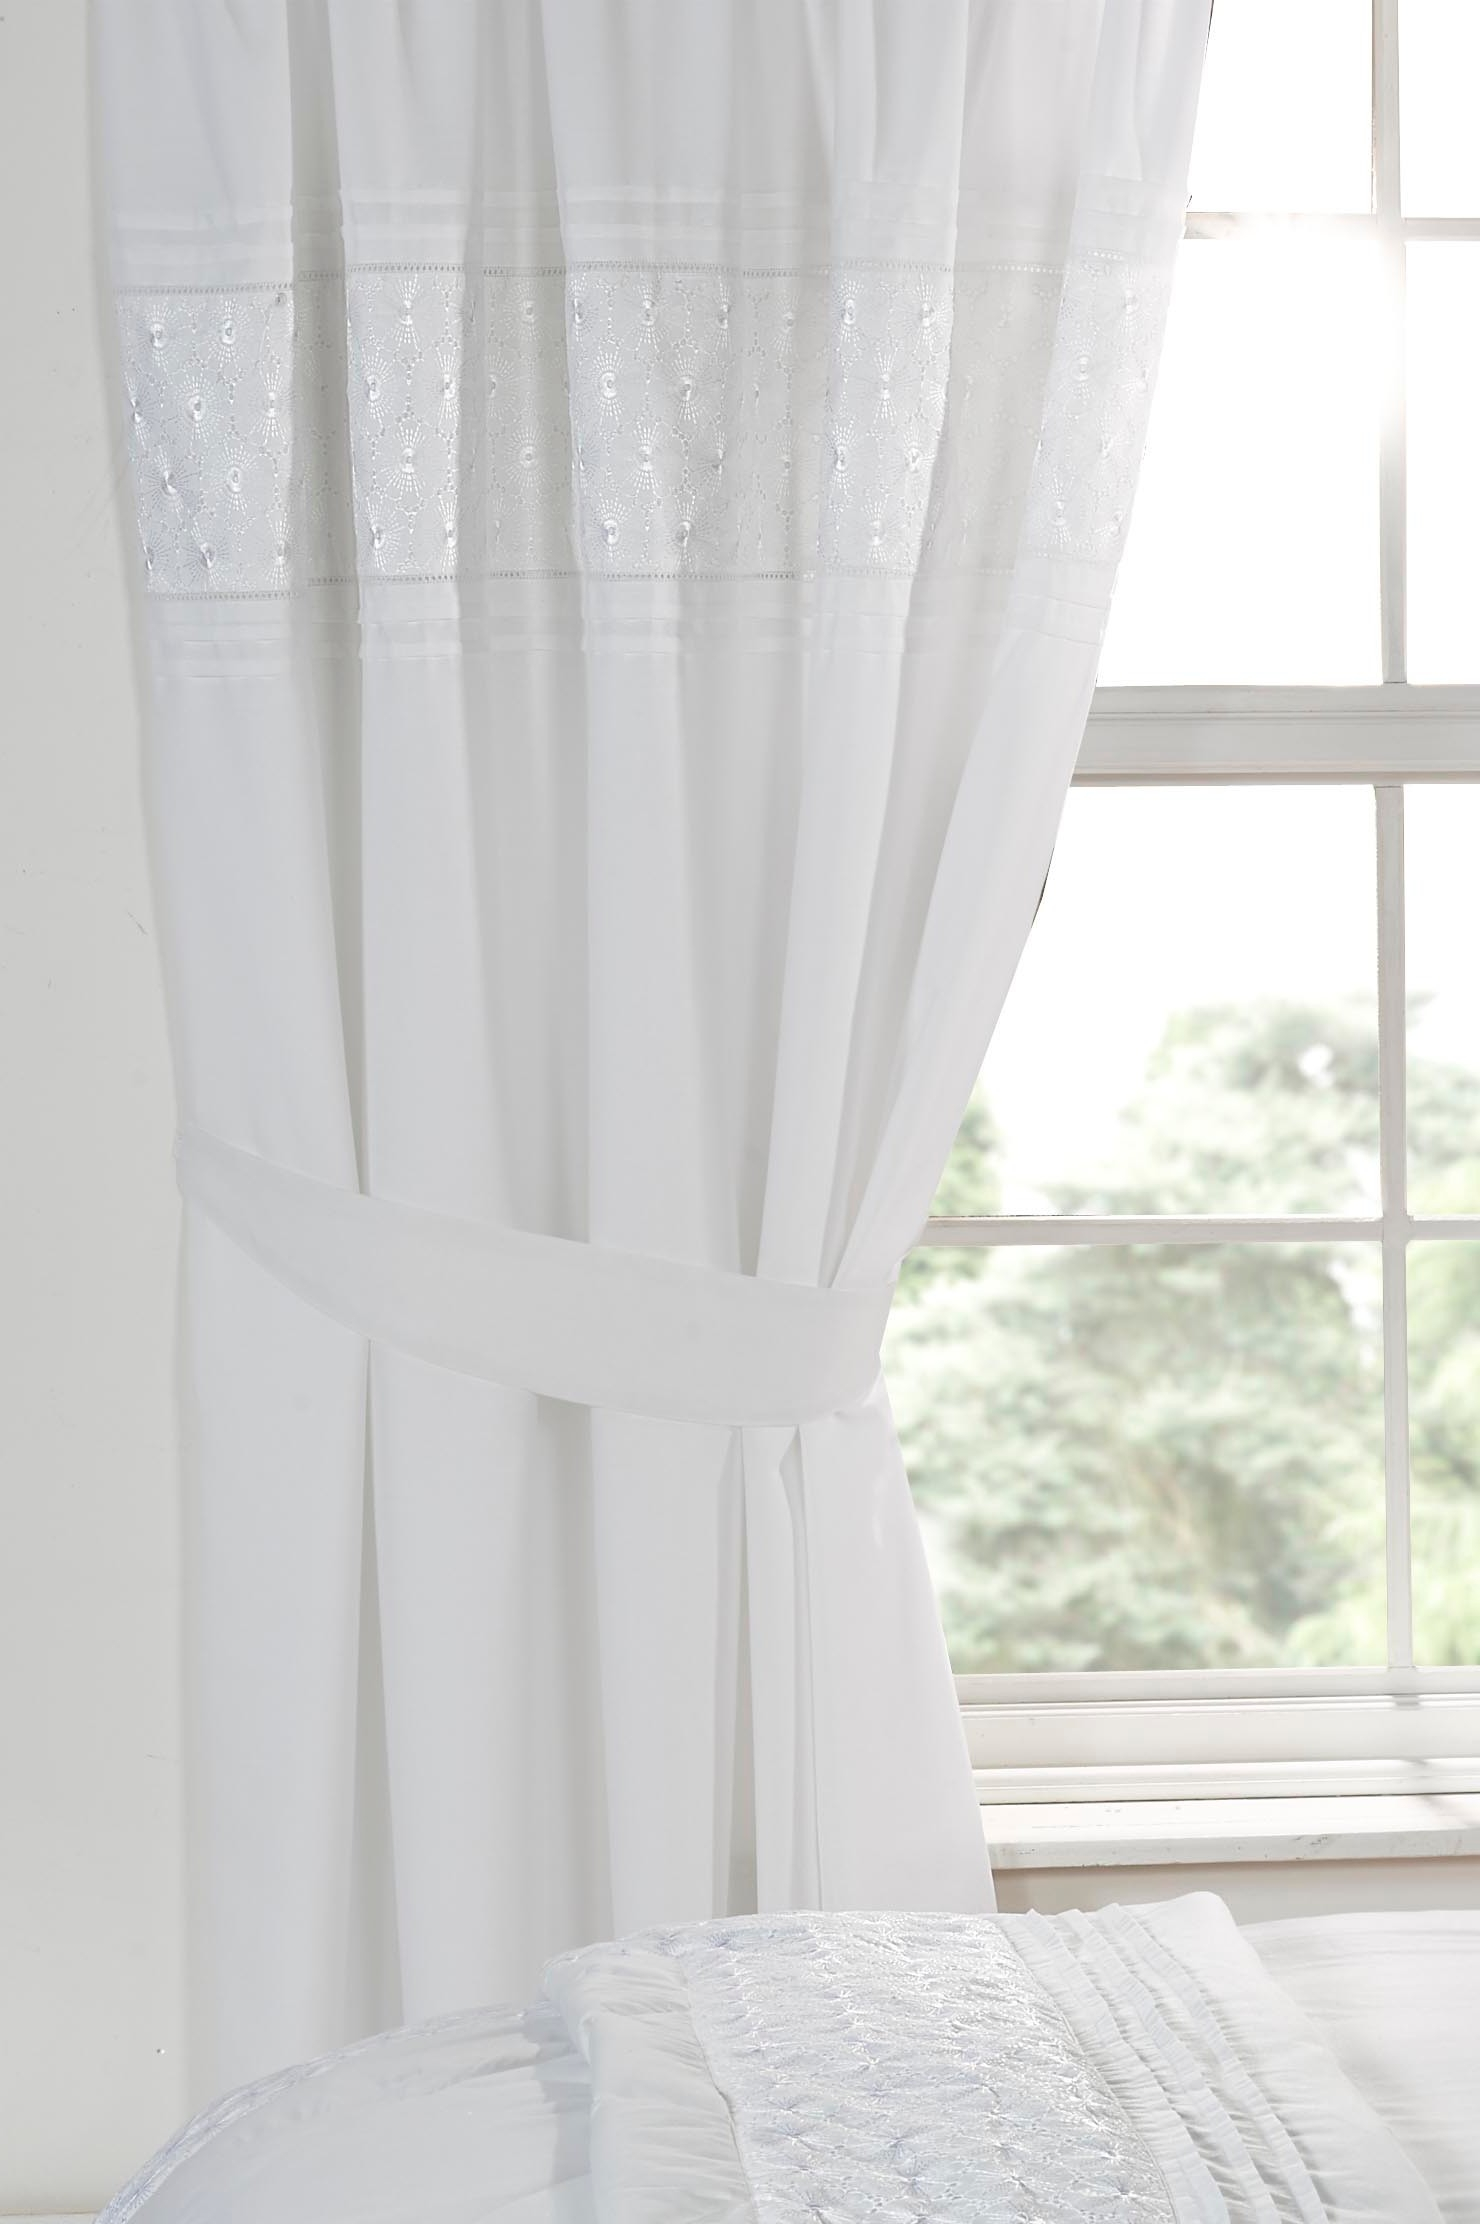 Curtain Luxury White Curtains With Regard To Luxury White Curtains (Image 1 of 15)